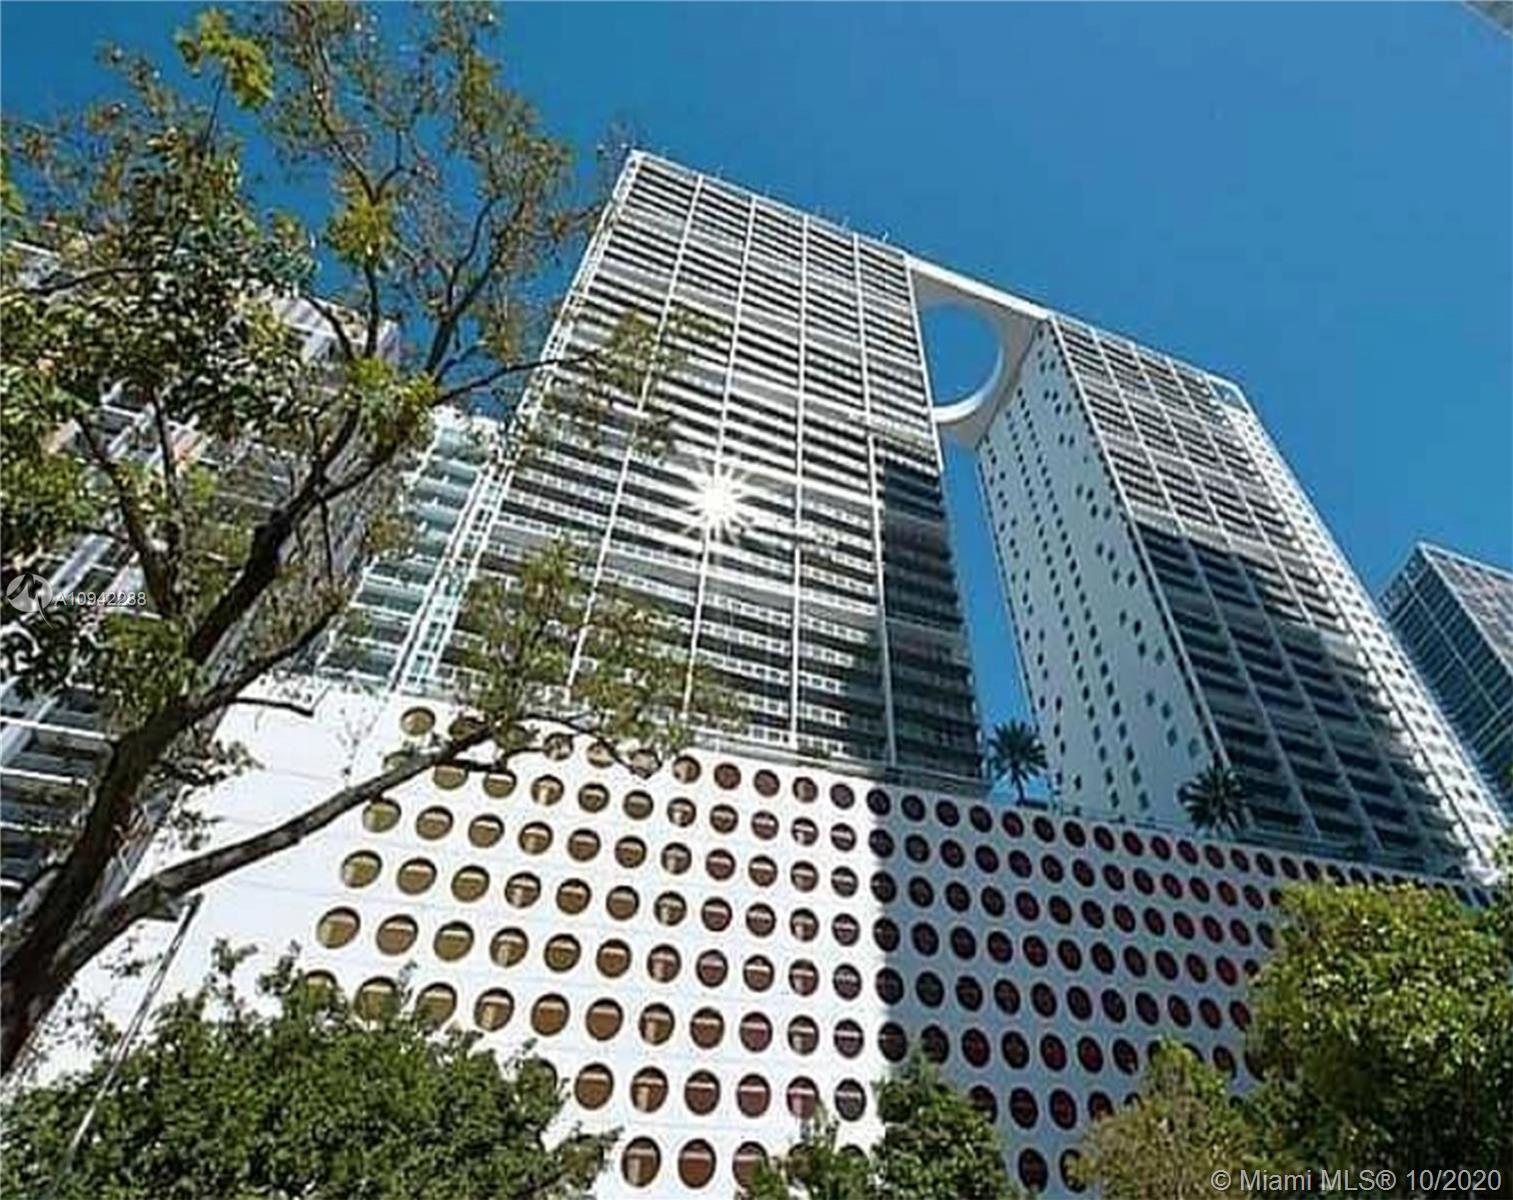 NICE 1 BED/1BATH UNIT AT 500 BRICKELL EAST. EUROPEAN KITCHEN W/ STAINLESS STEEL APPLIANCES AND QUARZ